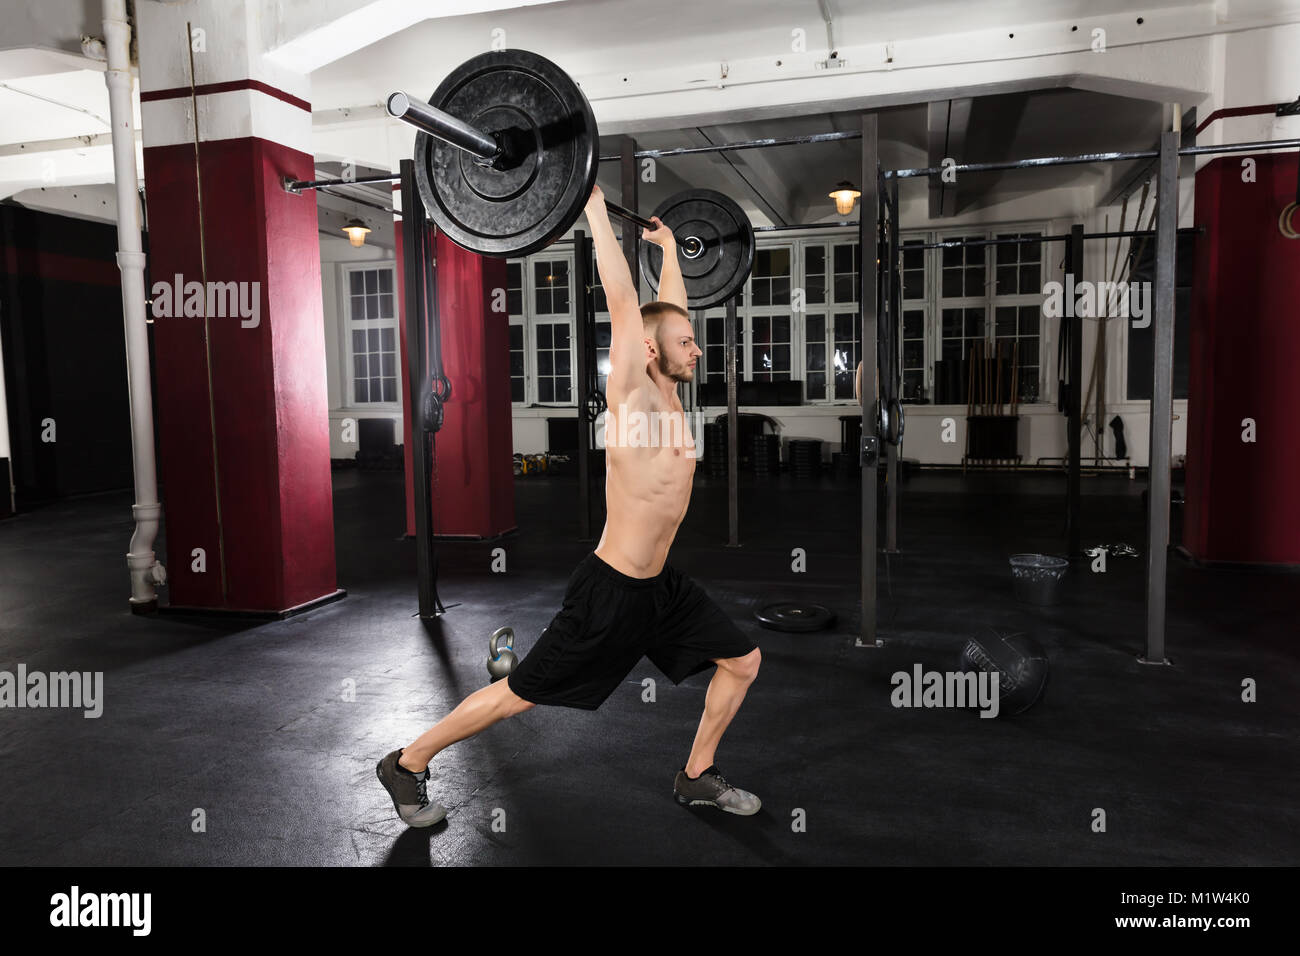 Young Athlete Man Working Out With Barbell In The Gym - Stock Image